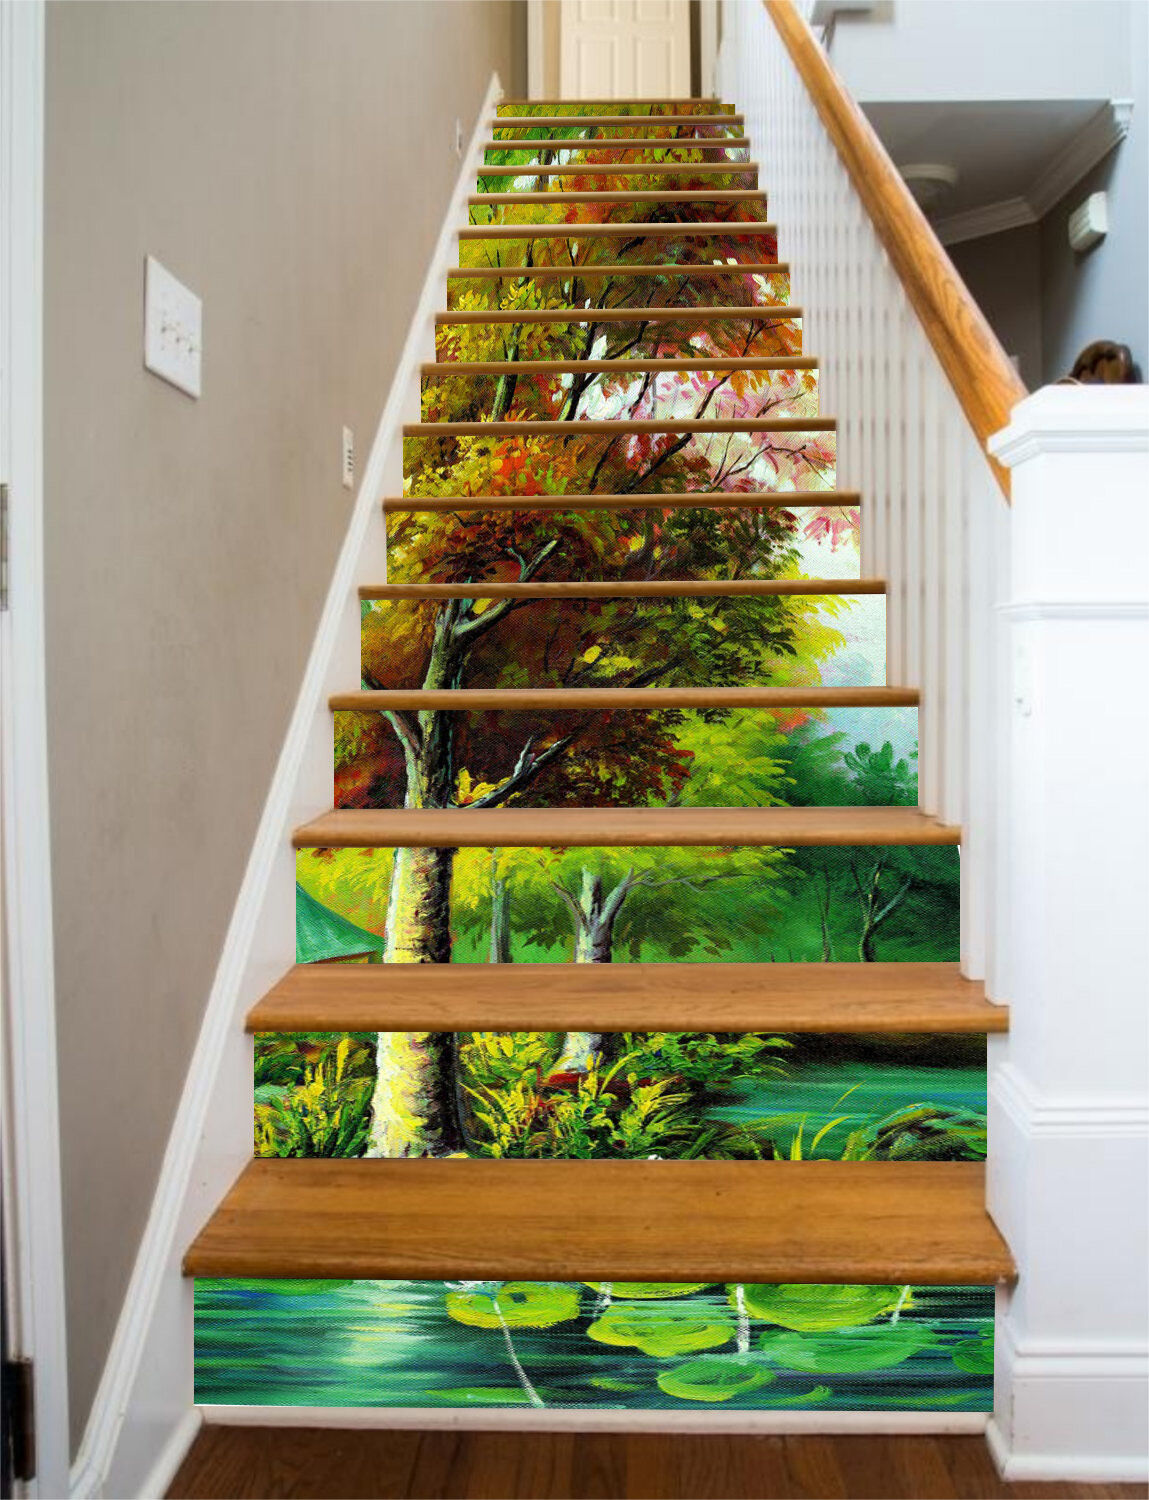 3D Pond forest 45 Stair Risers Decoration Photo Mural Vinyl Decal Wallpaper UK